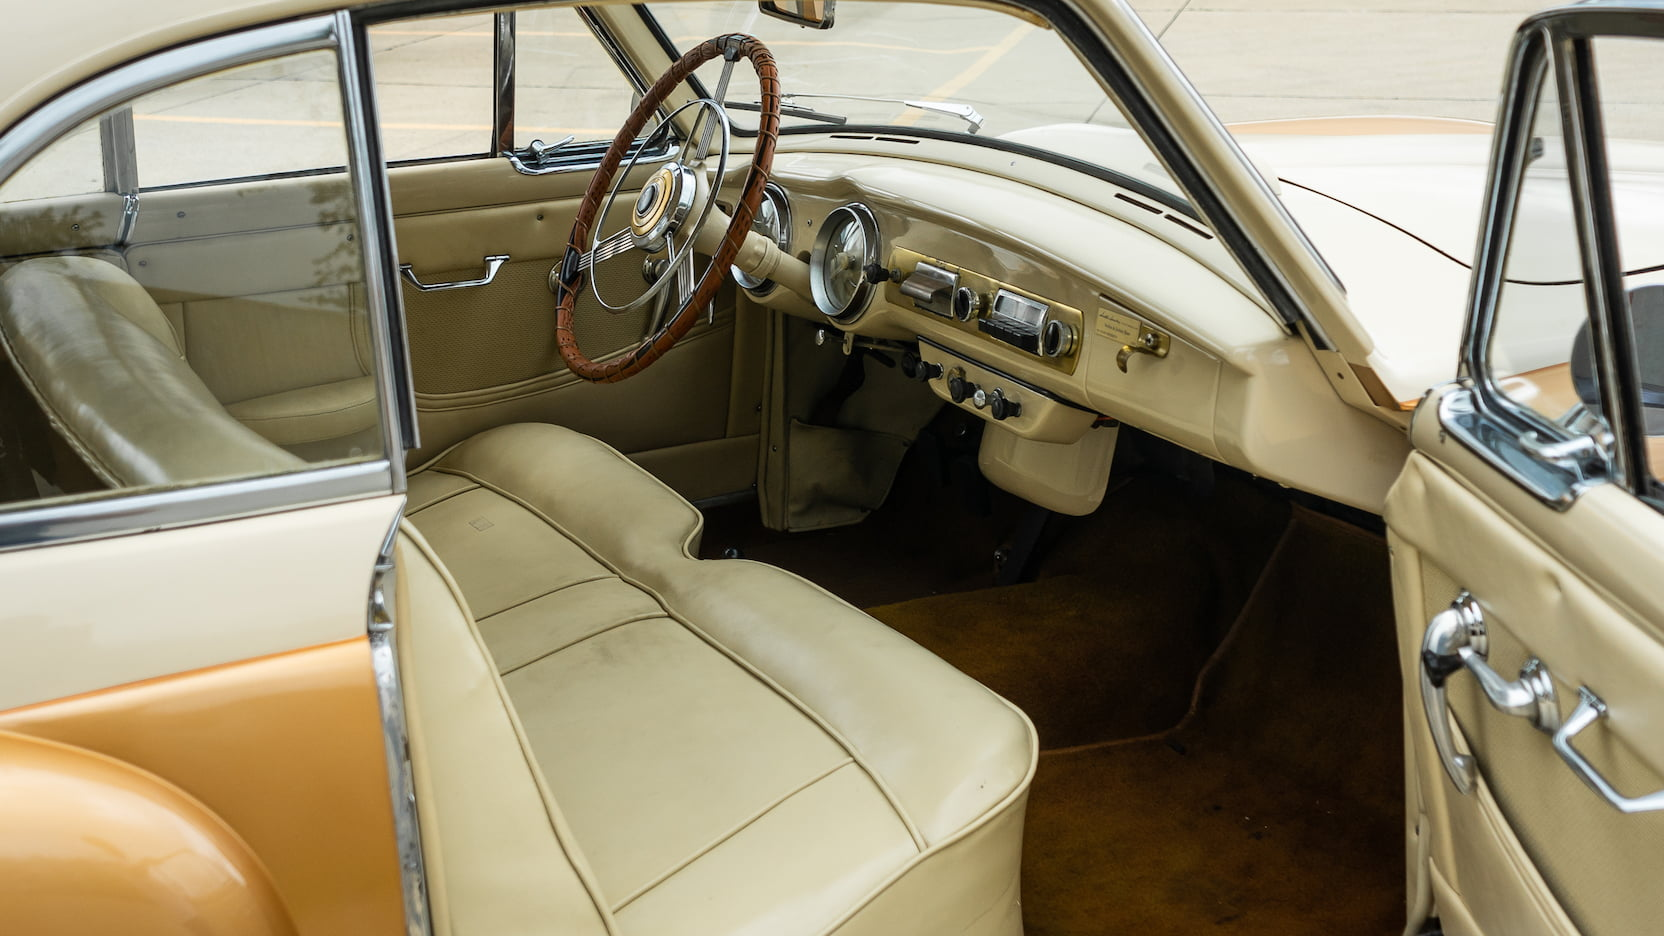 Nash-Healey Le Mans interior